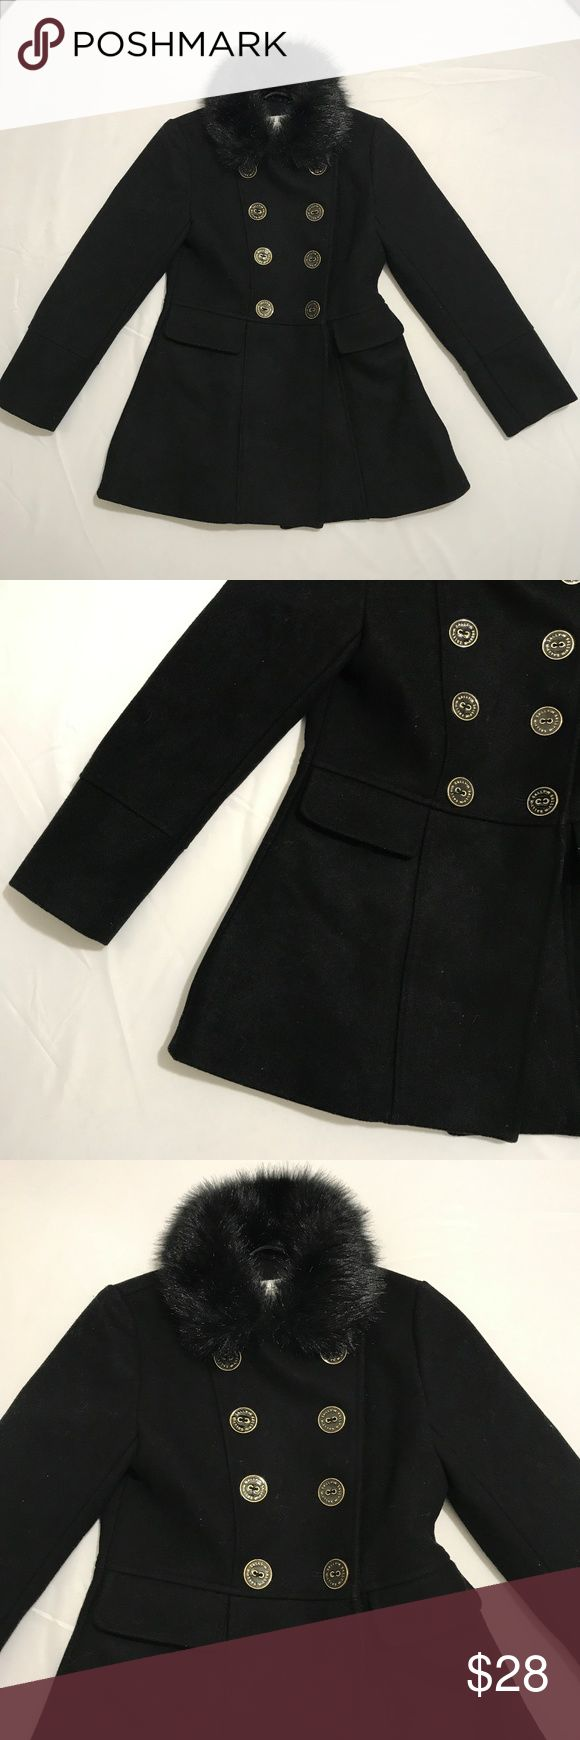 "Sally Miller Girls Winter Fur Pea Coat Black Sz M8 Sally Miller Girls Winter Fur Pea Coat Black Size Medium 8 Measurements 14"" armpit to armpit, 23"" shoulder to hem, 19"" sleeve Excellent condition no flaws 2 lbs Sally Miller Jackets & Coats Pea Coats"